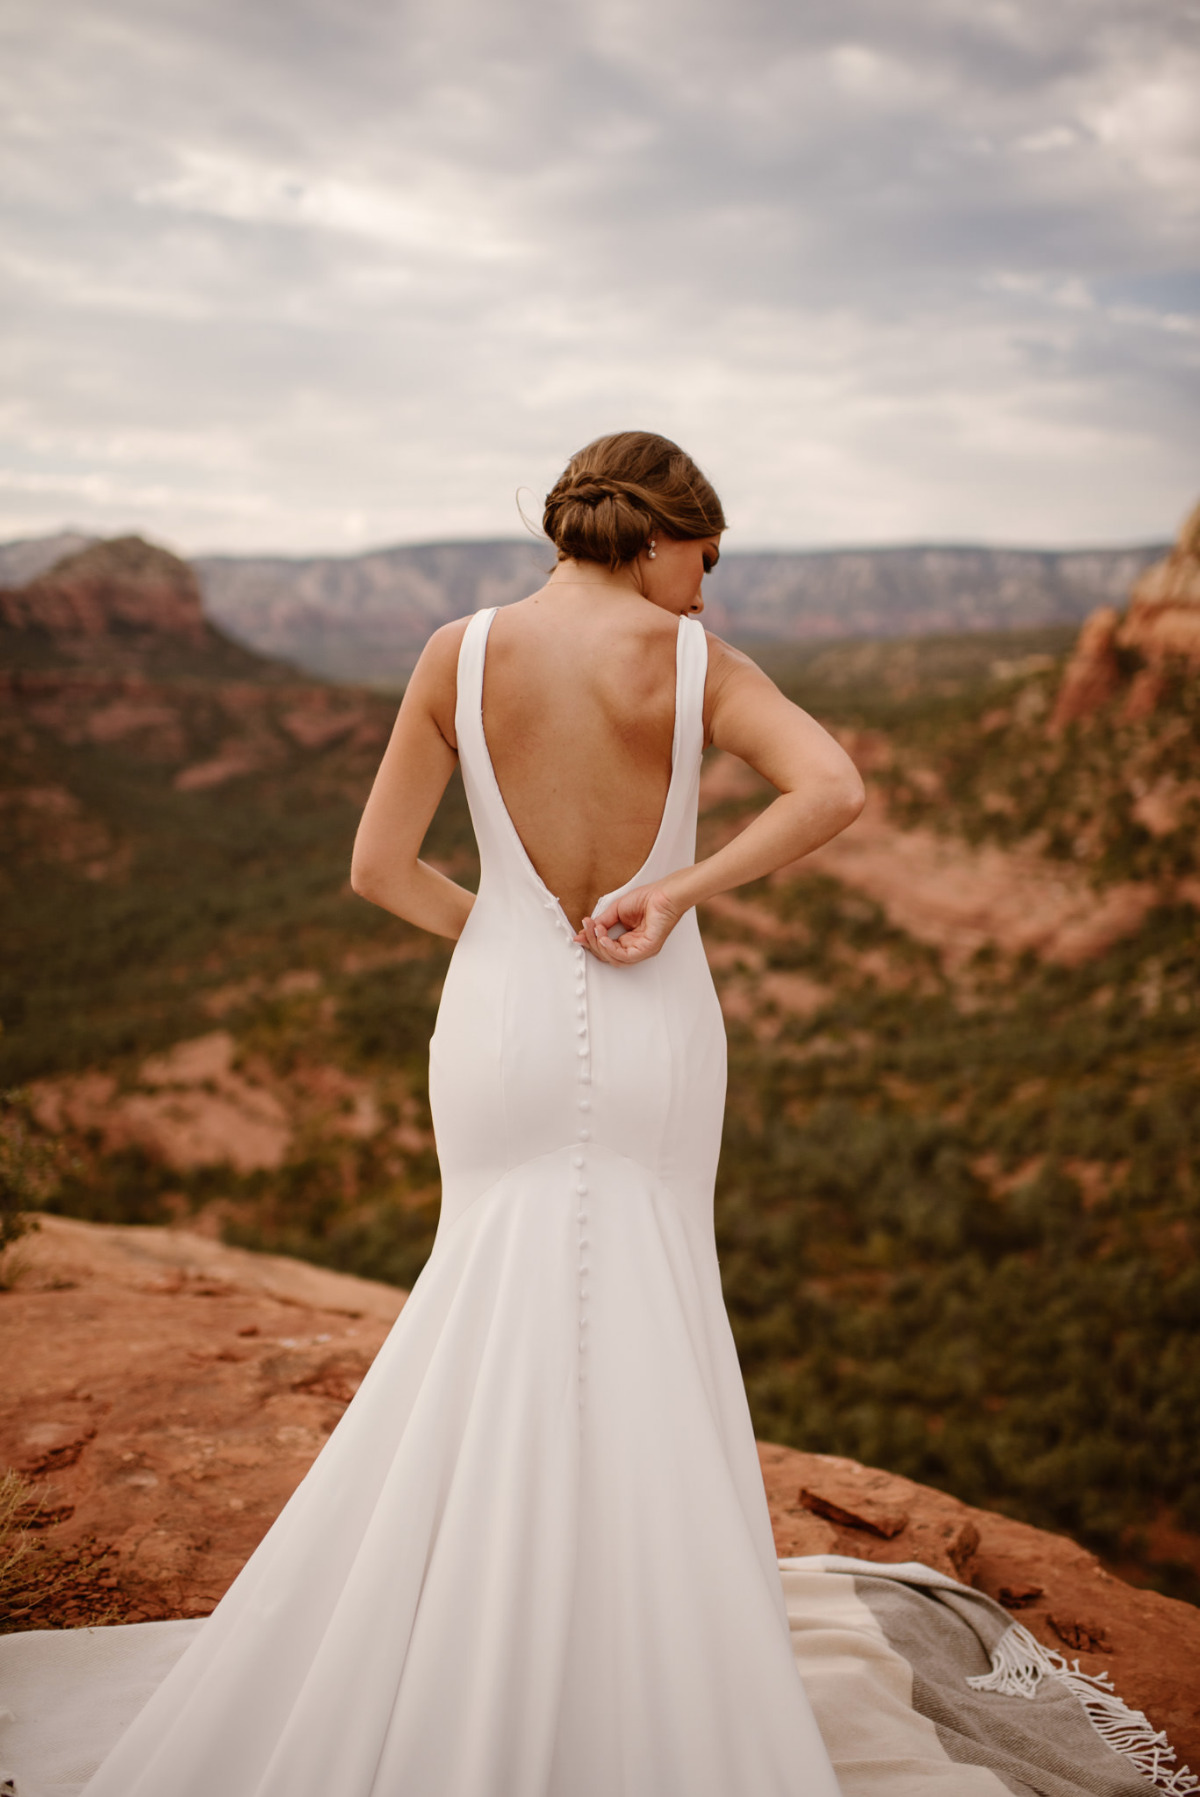 An Intimate + Adventurous Wedding Amongst The Red Rocks In Sedona